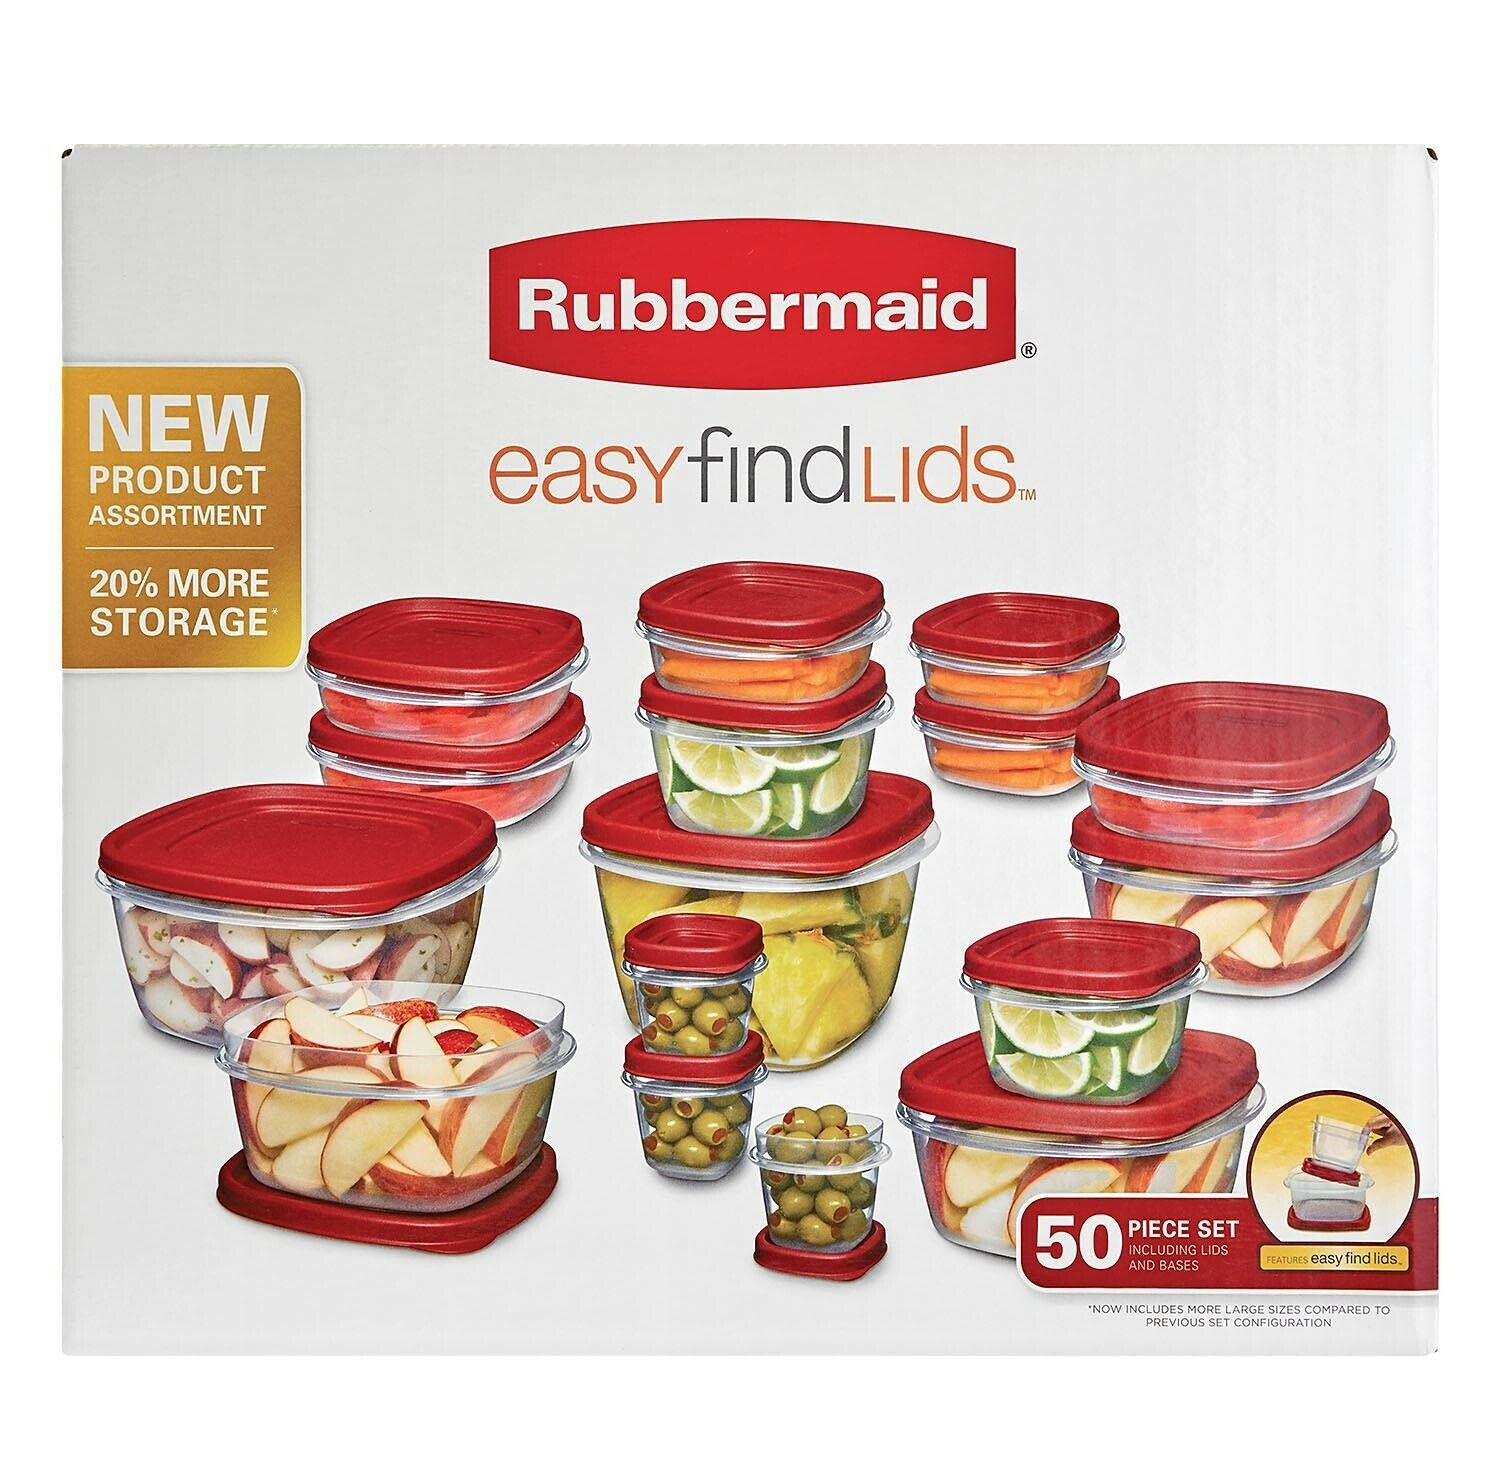 Rubbermaid 50-Piece Easy Find Lids Food Storage Set 1